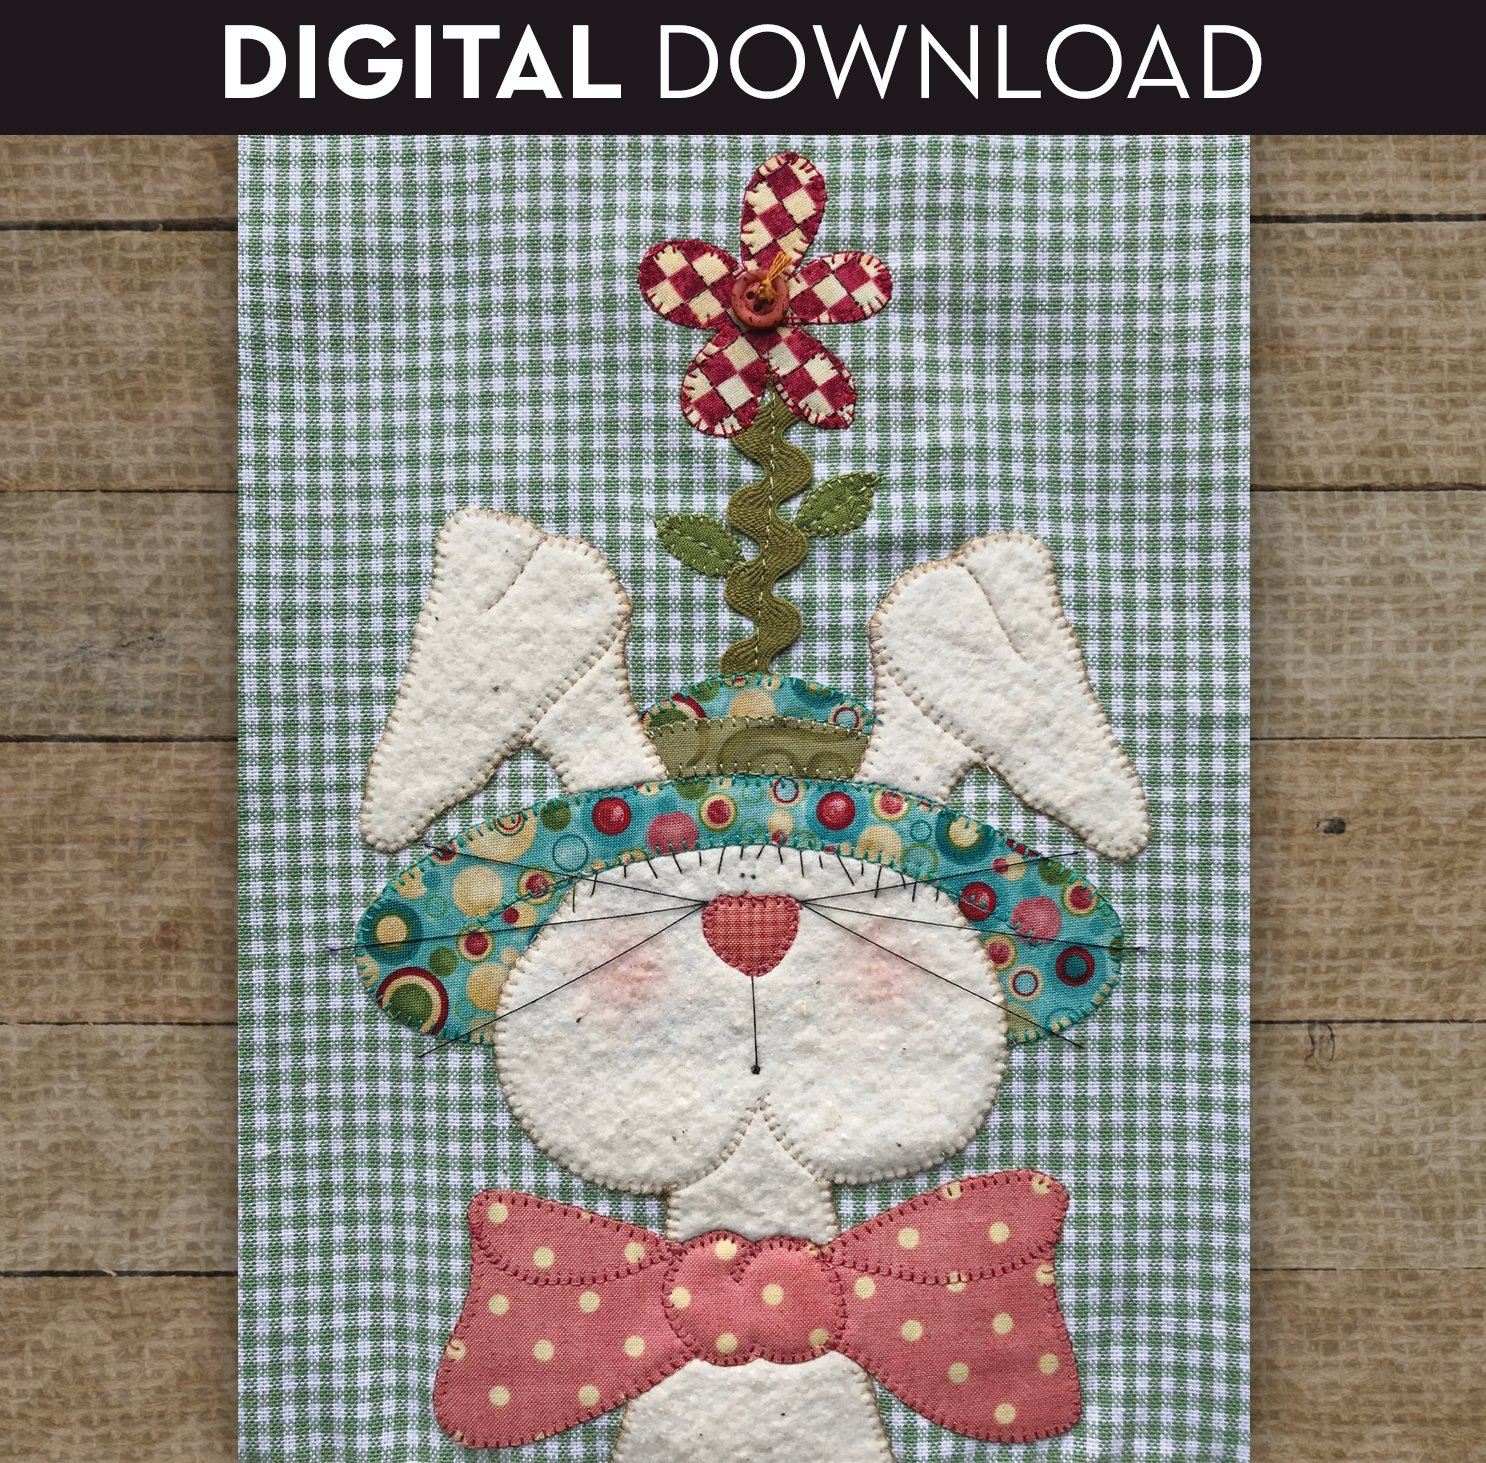 Bunny with Hat - Download